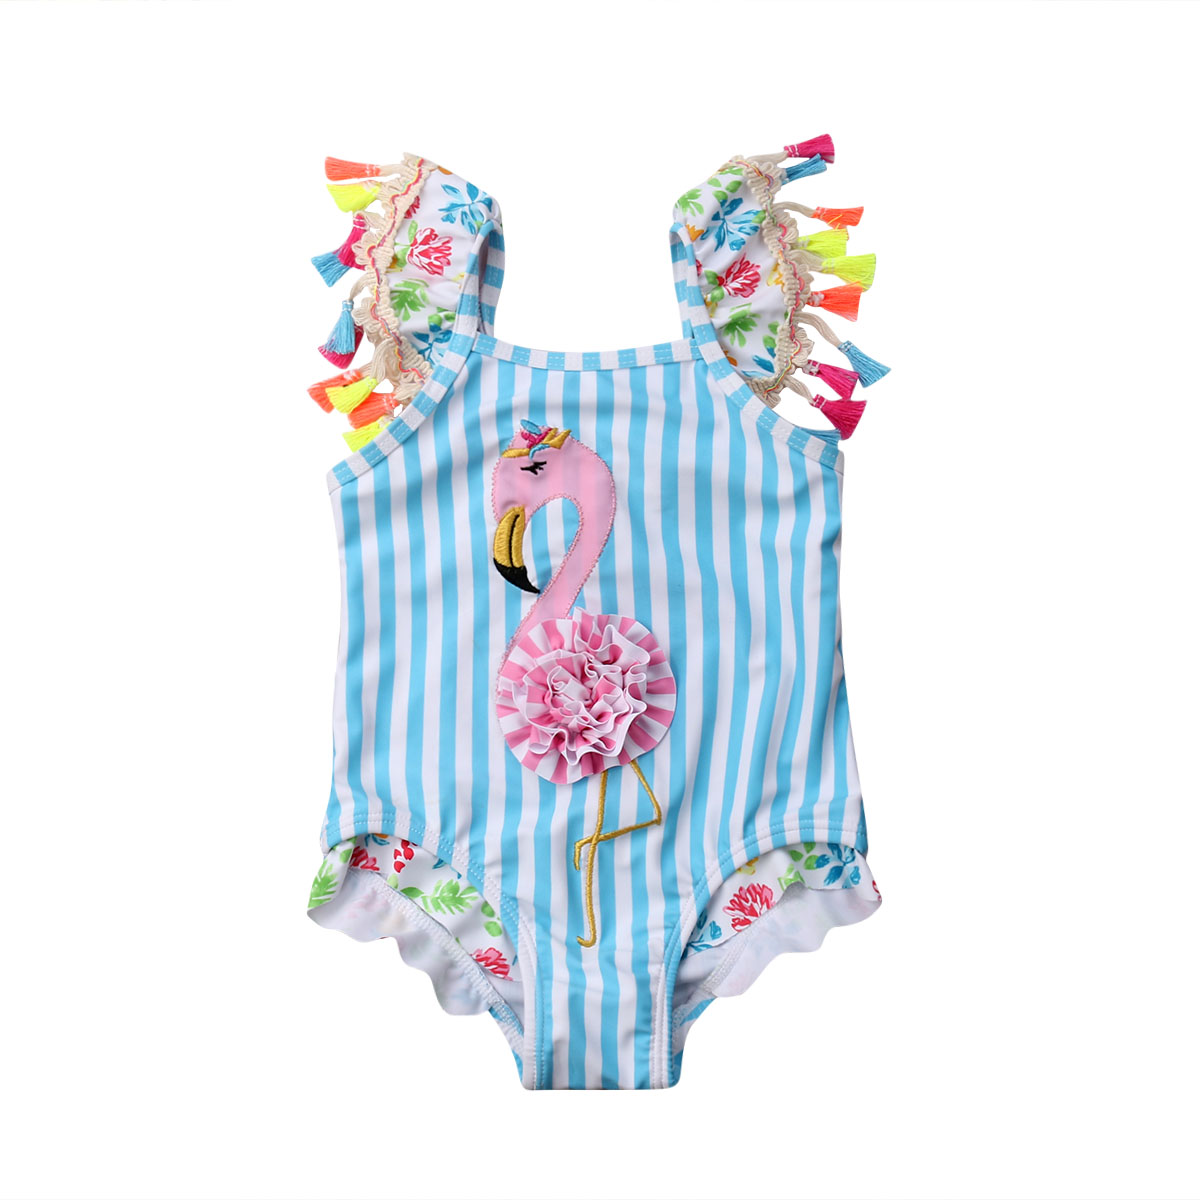 Kid Swimwear Baby Girls Bathing Suit Summer Flamingo Toddler Girl Swimsuit Children Striped Swimming Suit Infant Beachwear 6M-5T